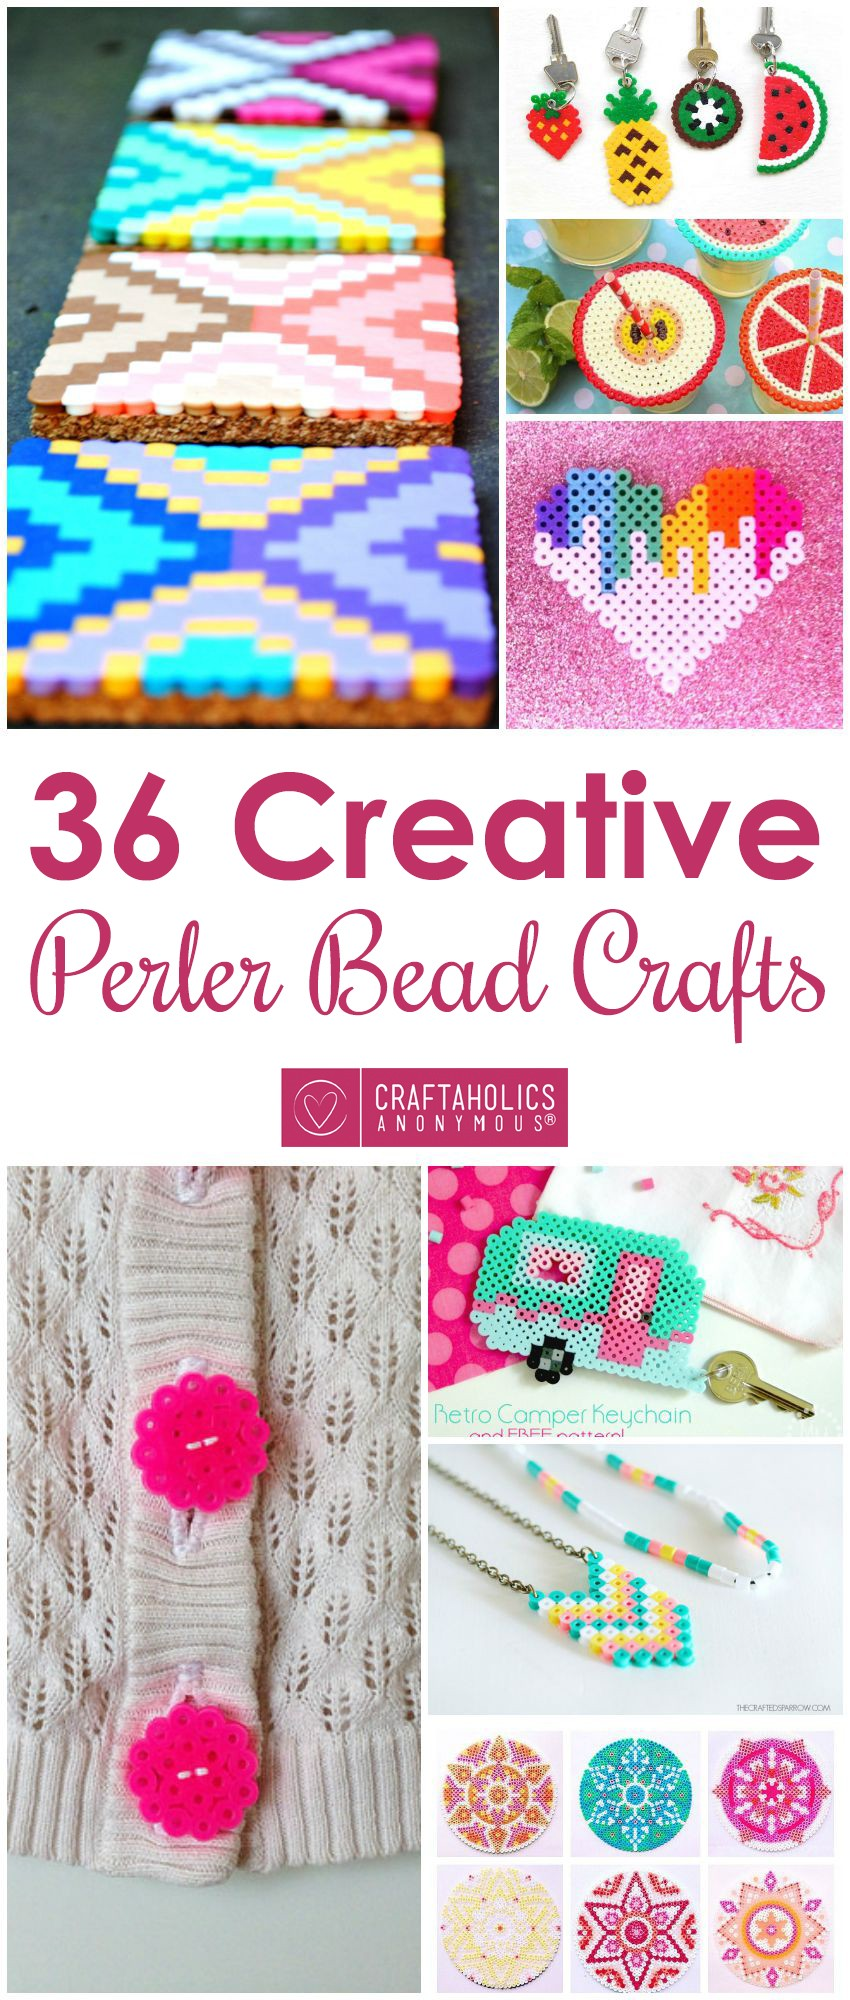 medium resolution of 36 perler bead crafts craftaholics anonymous